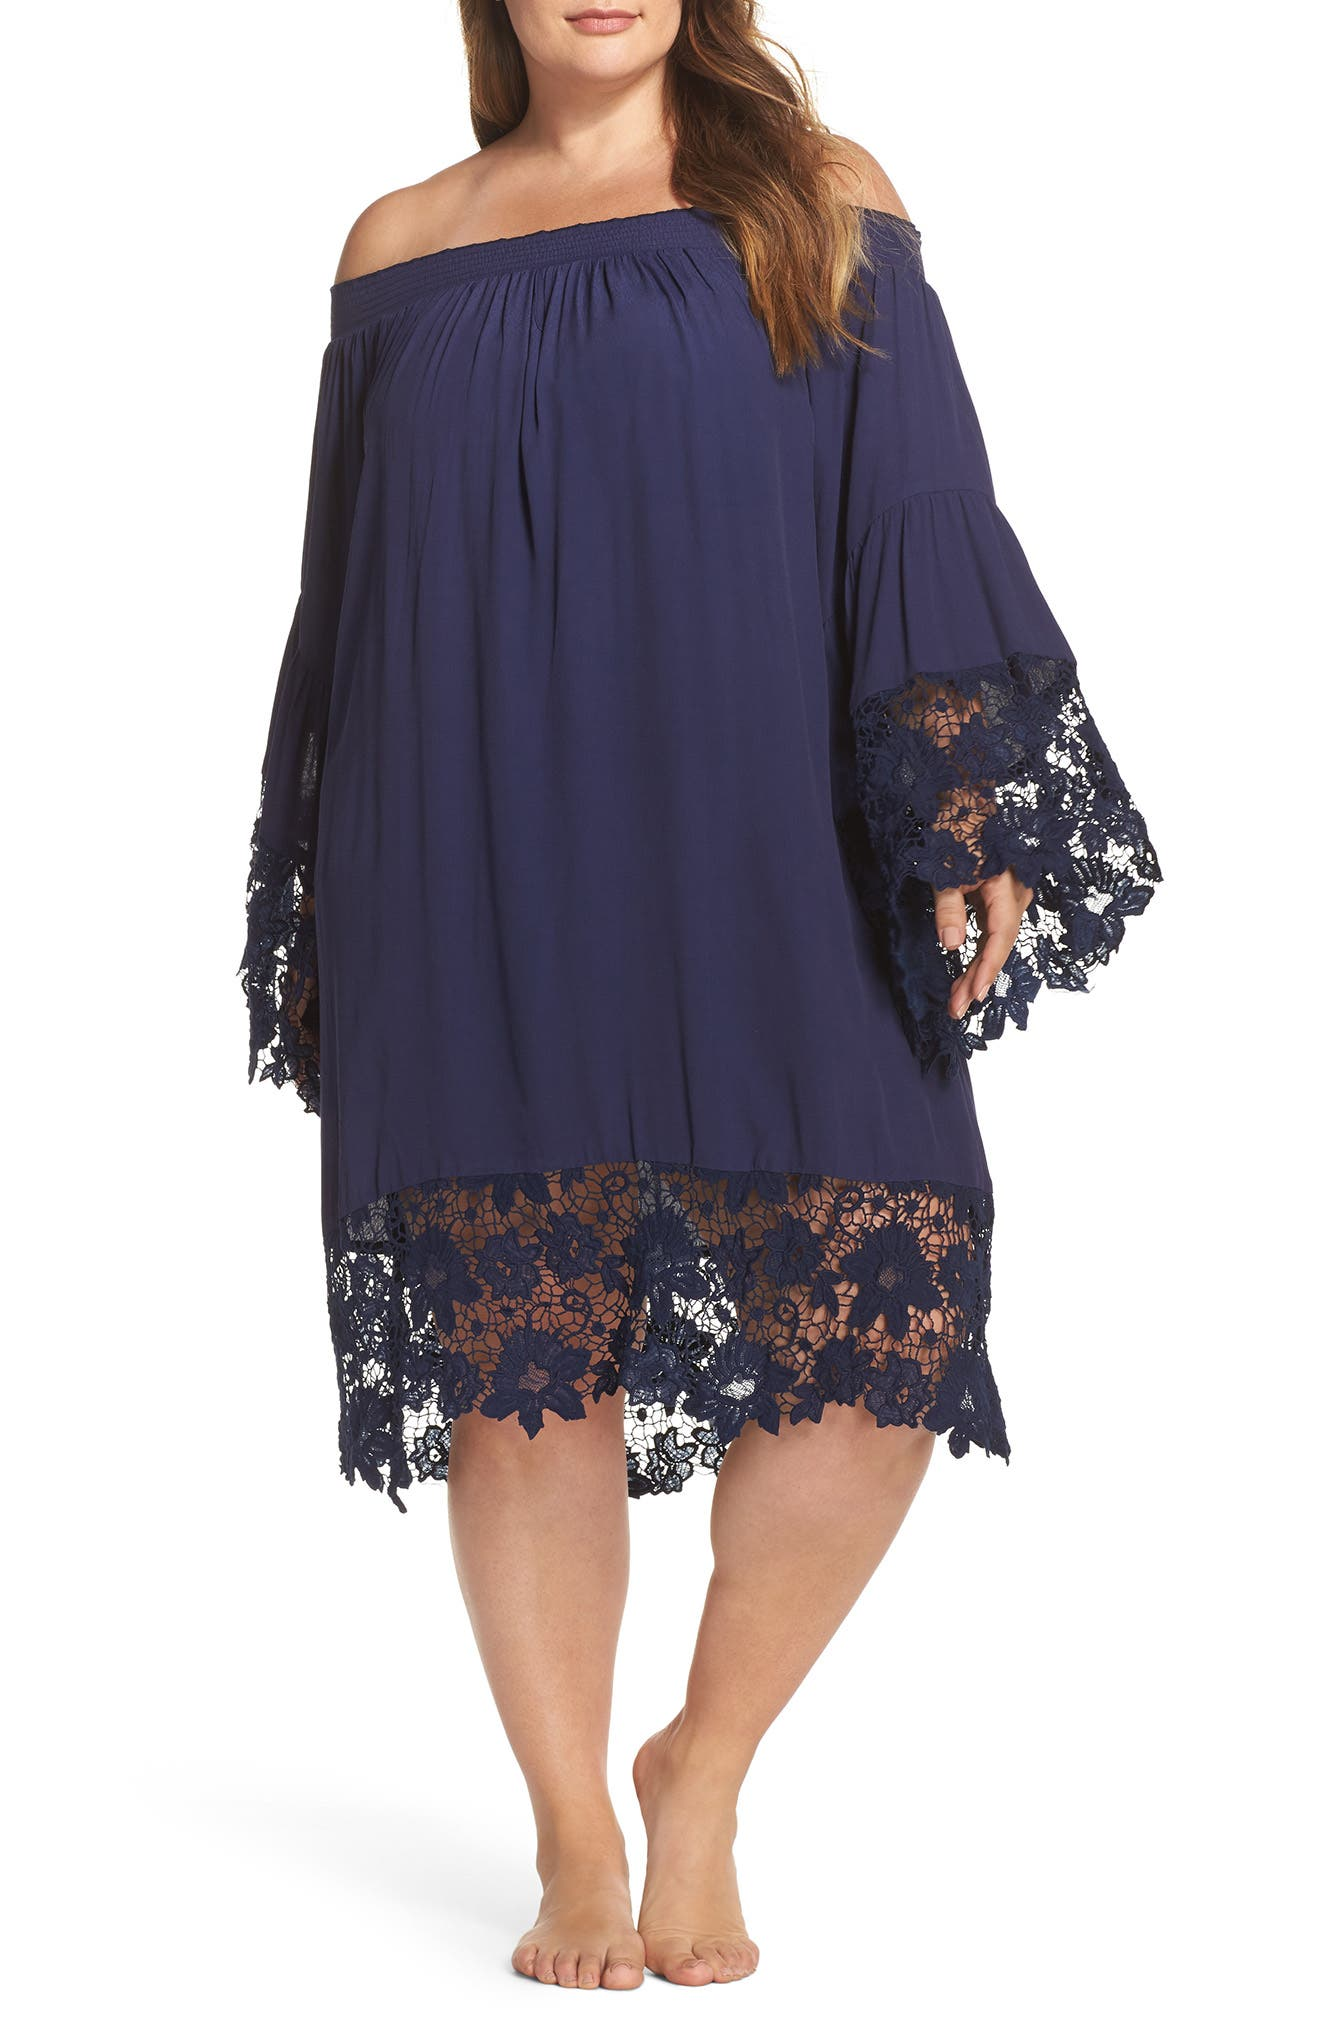 Muche et Muchette Jolie Lace Accent Cover-Up Dress (Plus-Size)